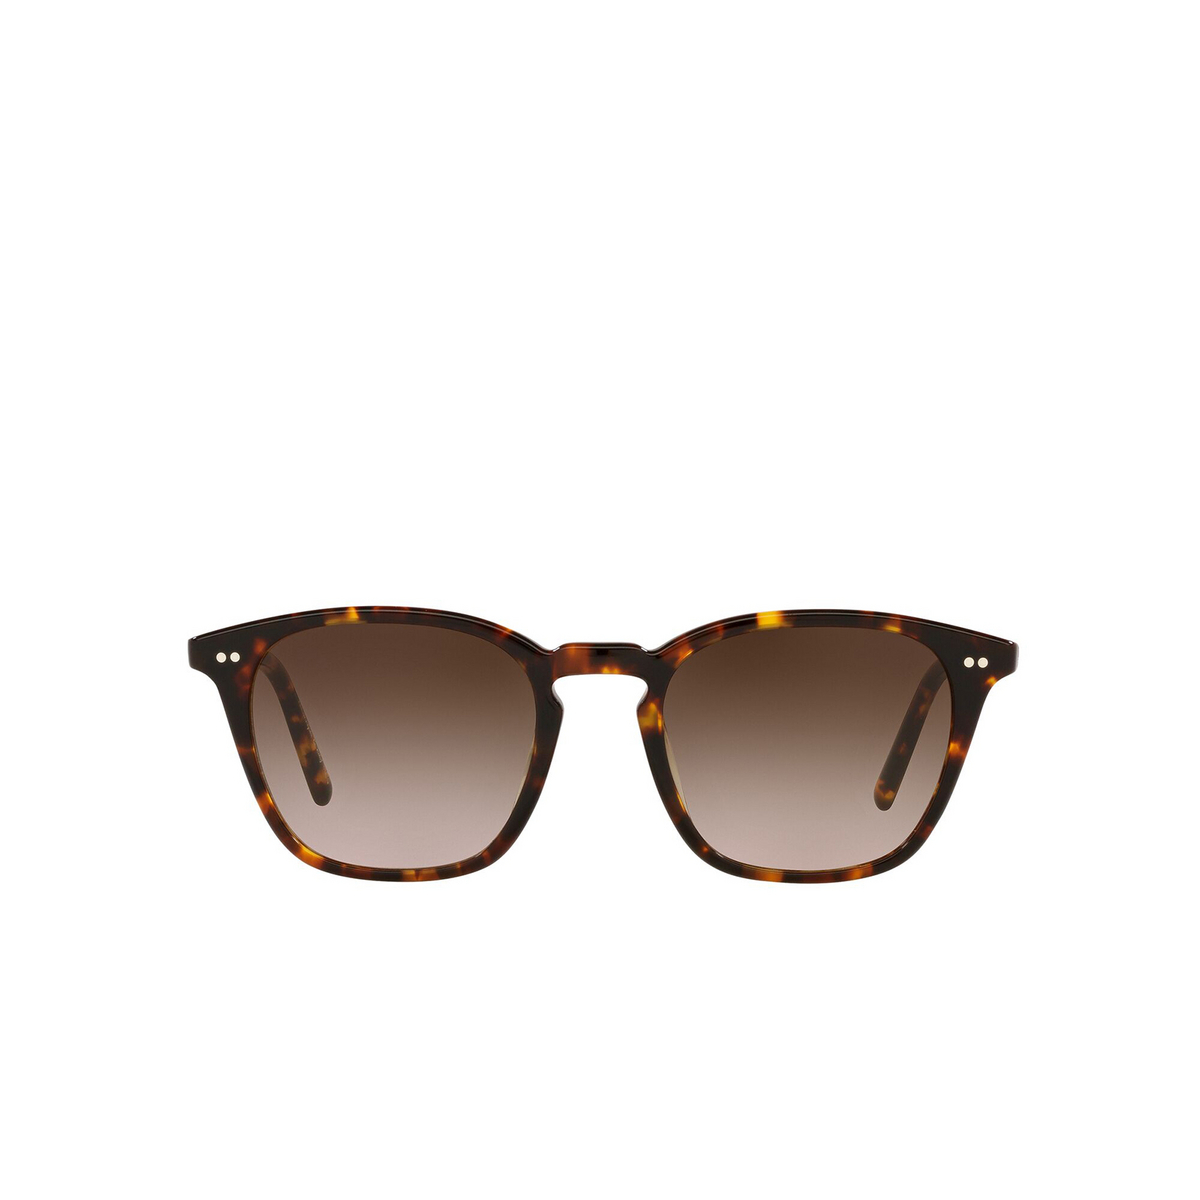 Oliver Peoples® Square Sunglasses: Frère Ny OV5462SU color Dm2 165413 - front view.